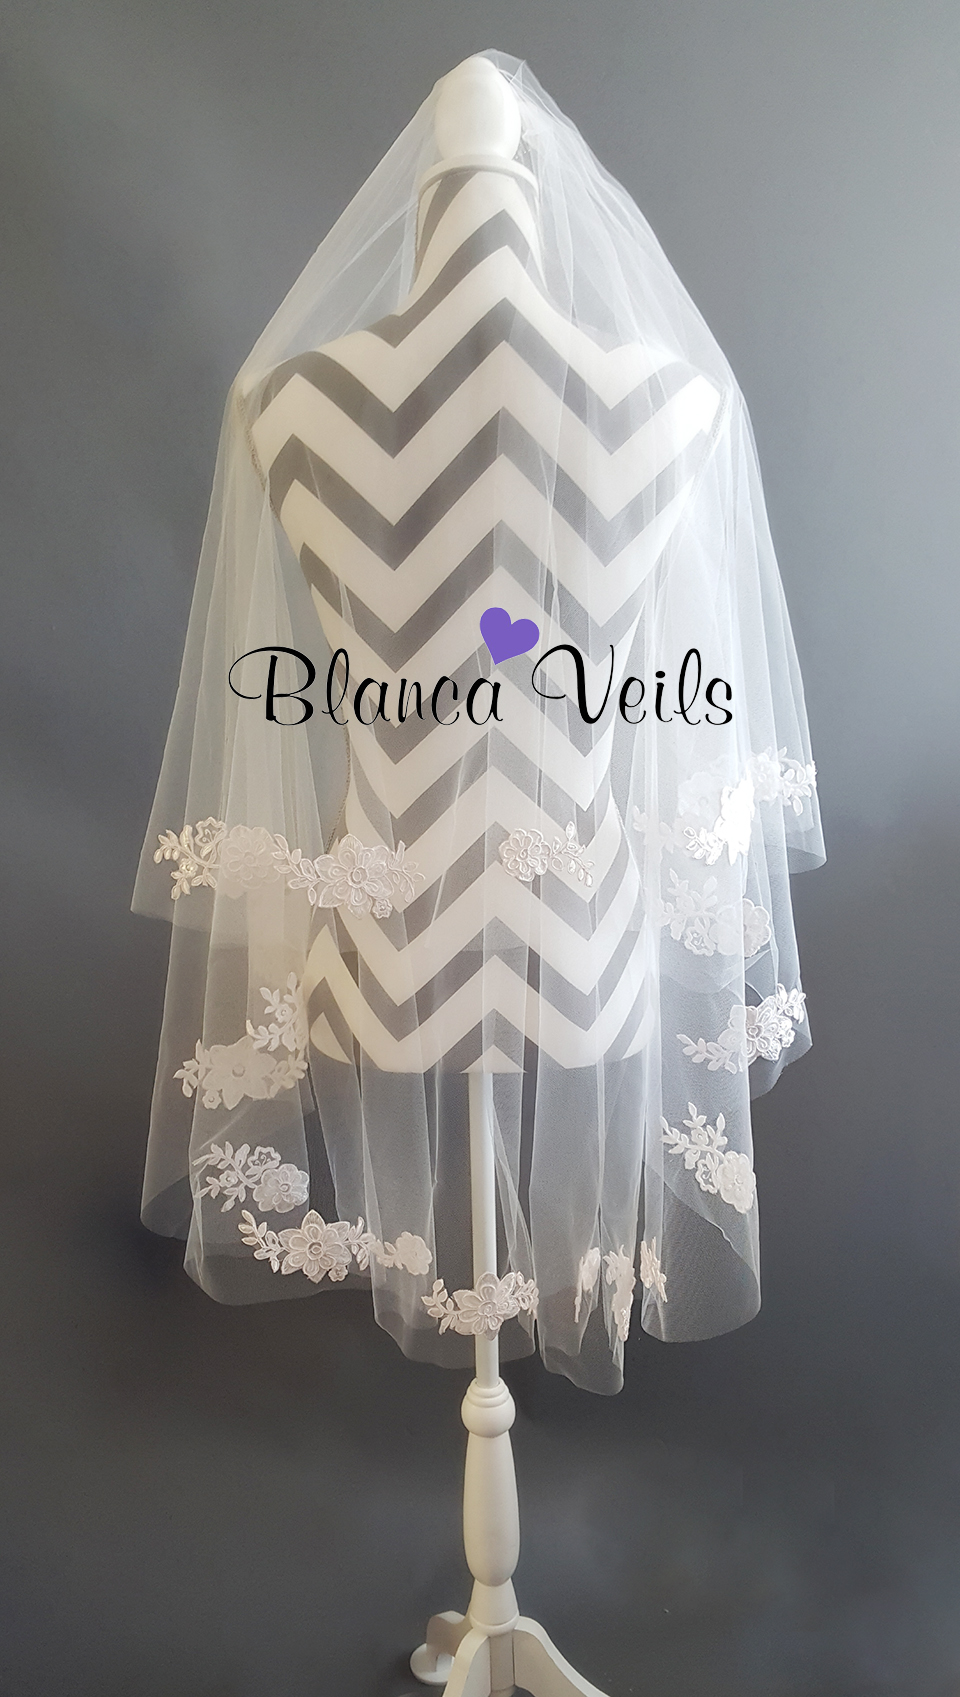 Applique Veil from BlancaVeils.com